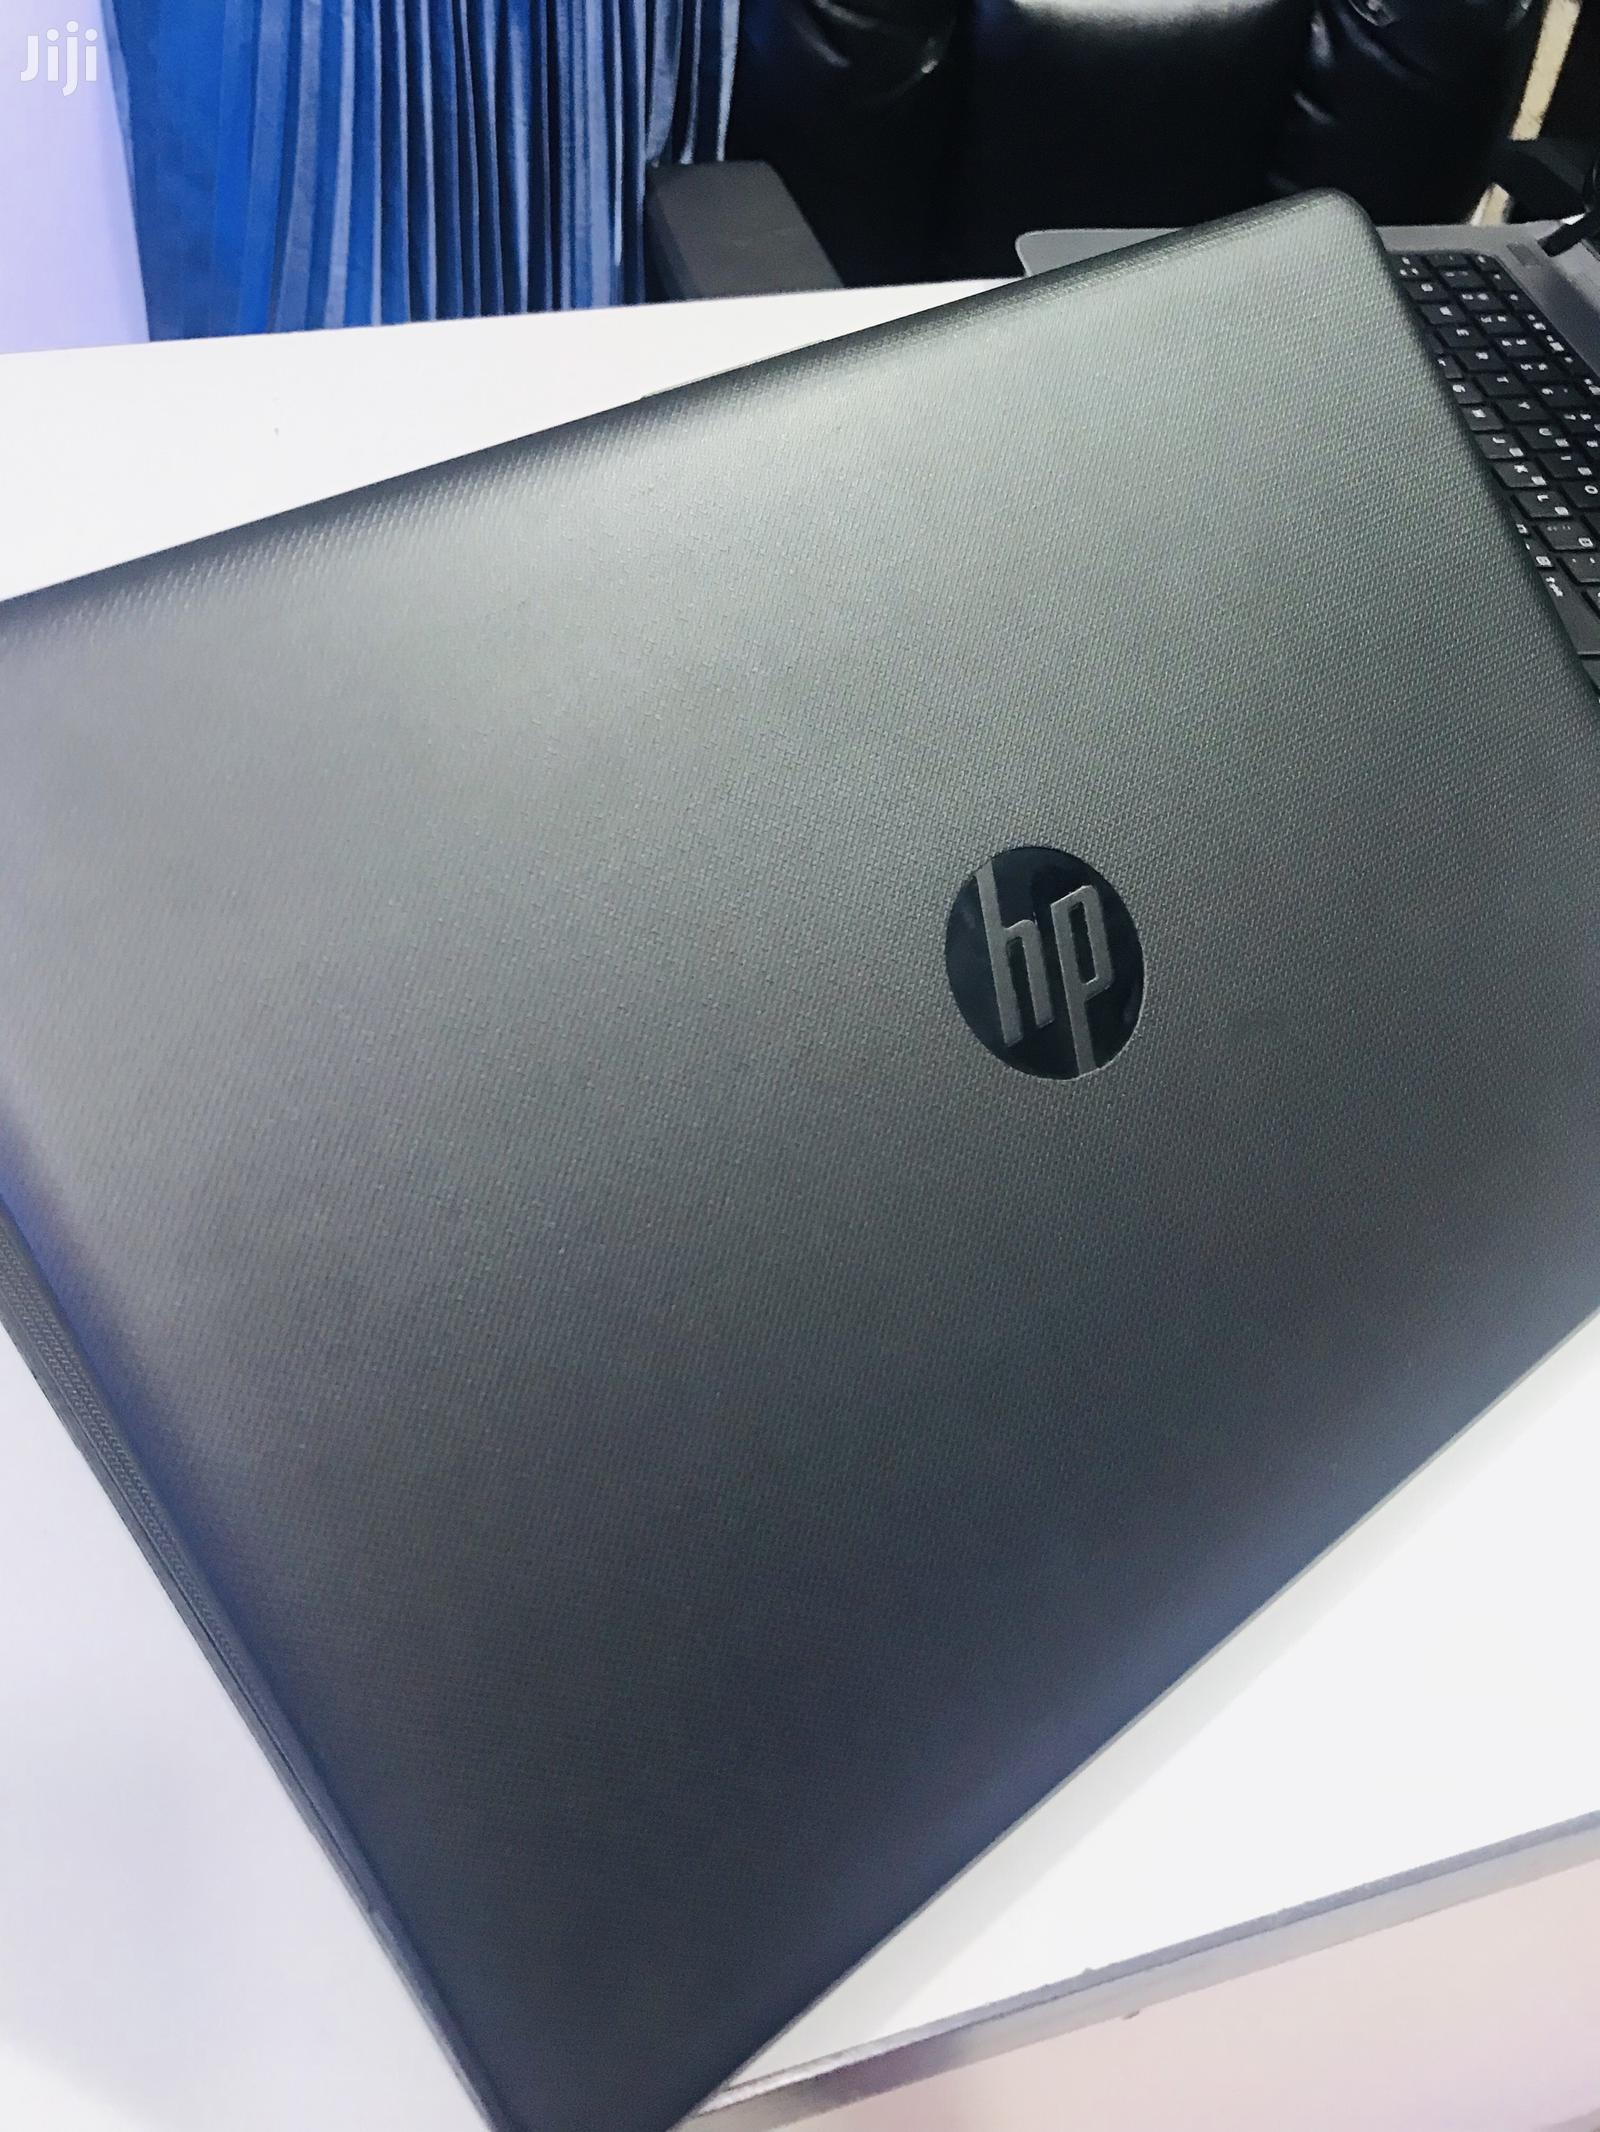 Laptop HP Pavilion 14-Ce1000 4GB Intel HDD 320GB | Laptops & Computers for sale in Kampala, Central Region, Uganda